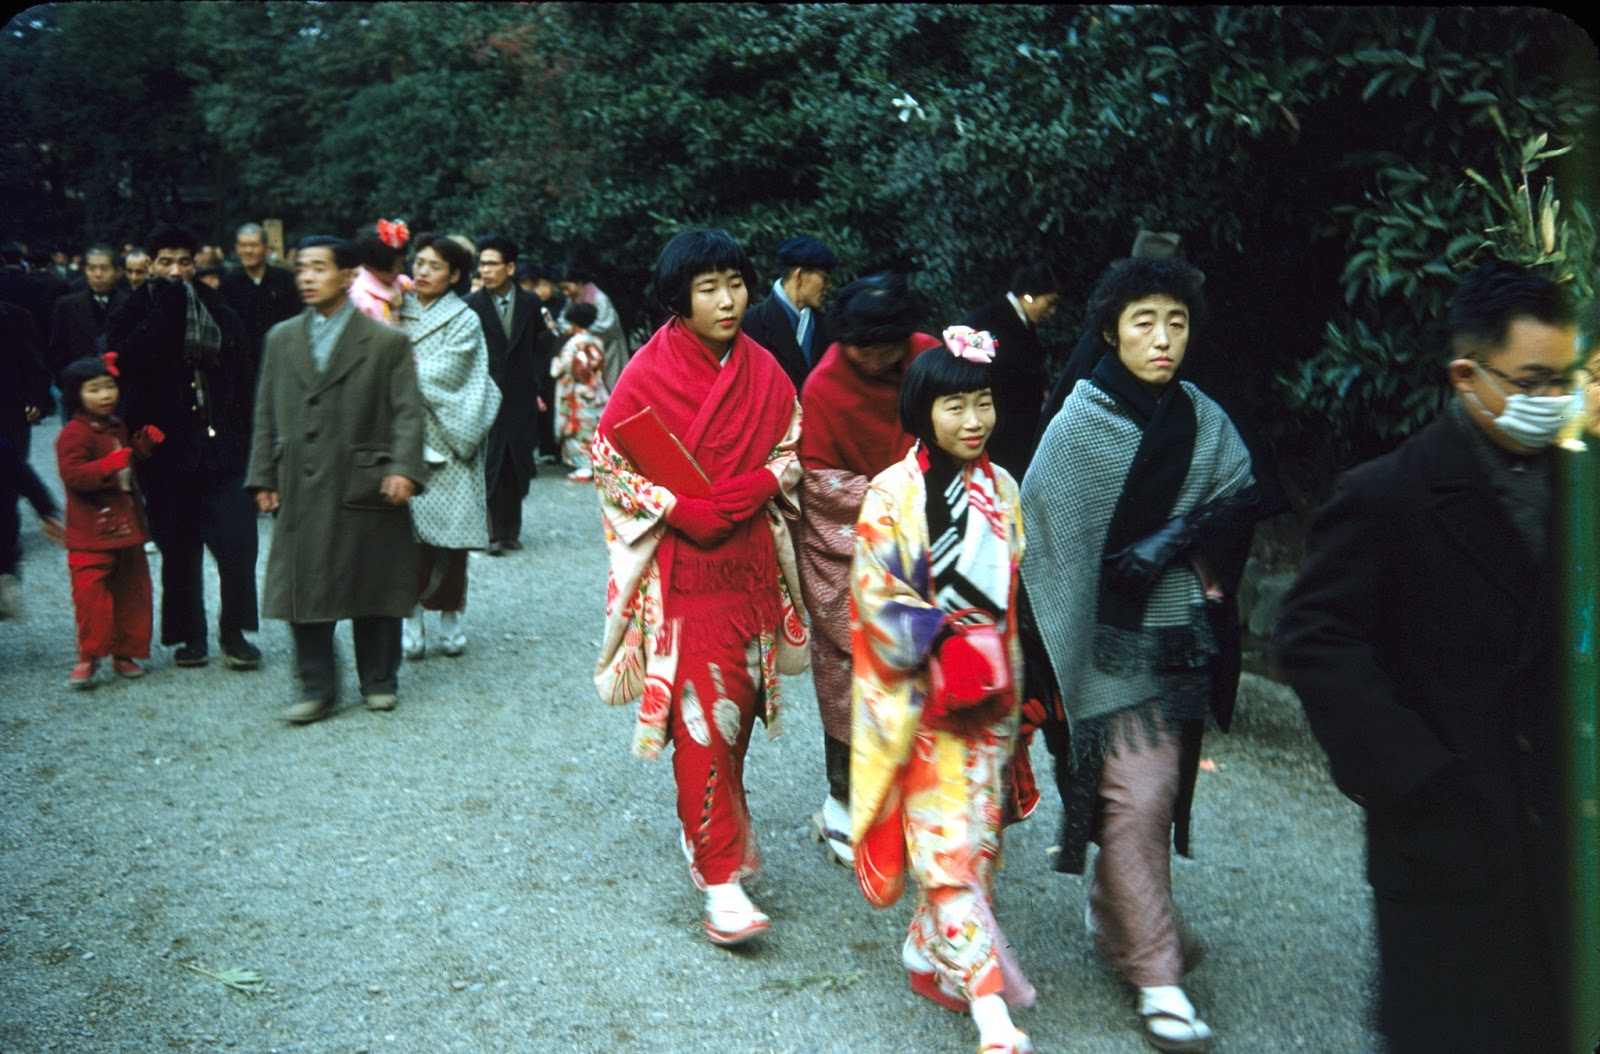 16 Wonderful Color Photographs Capture Everyday Life in Nagoya, Japan in the 1950s